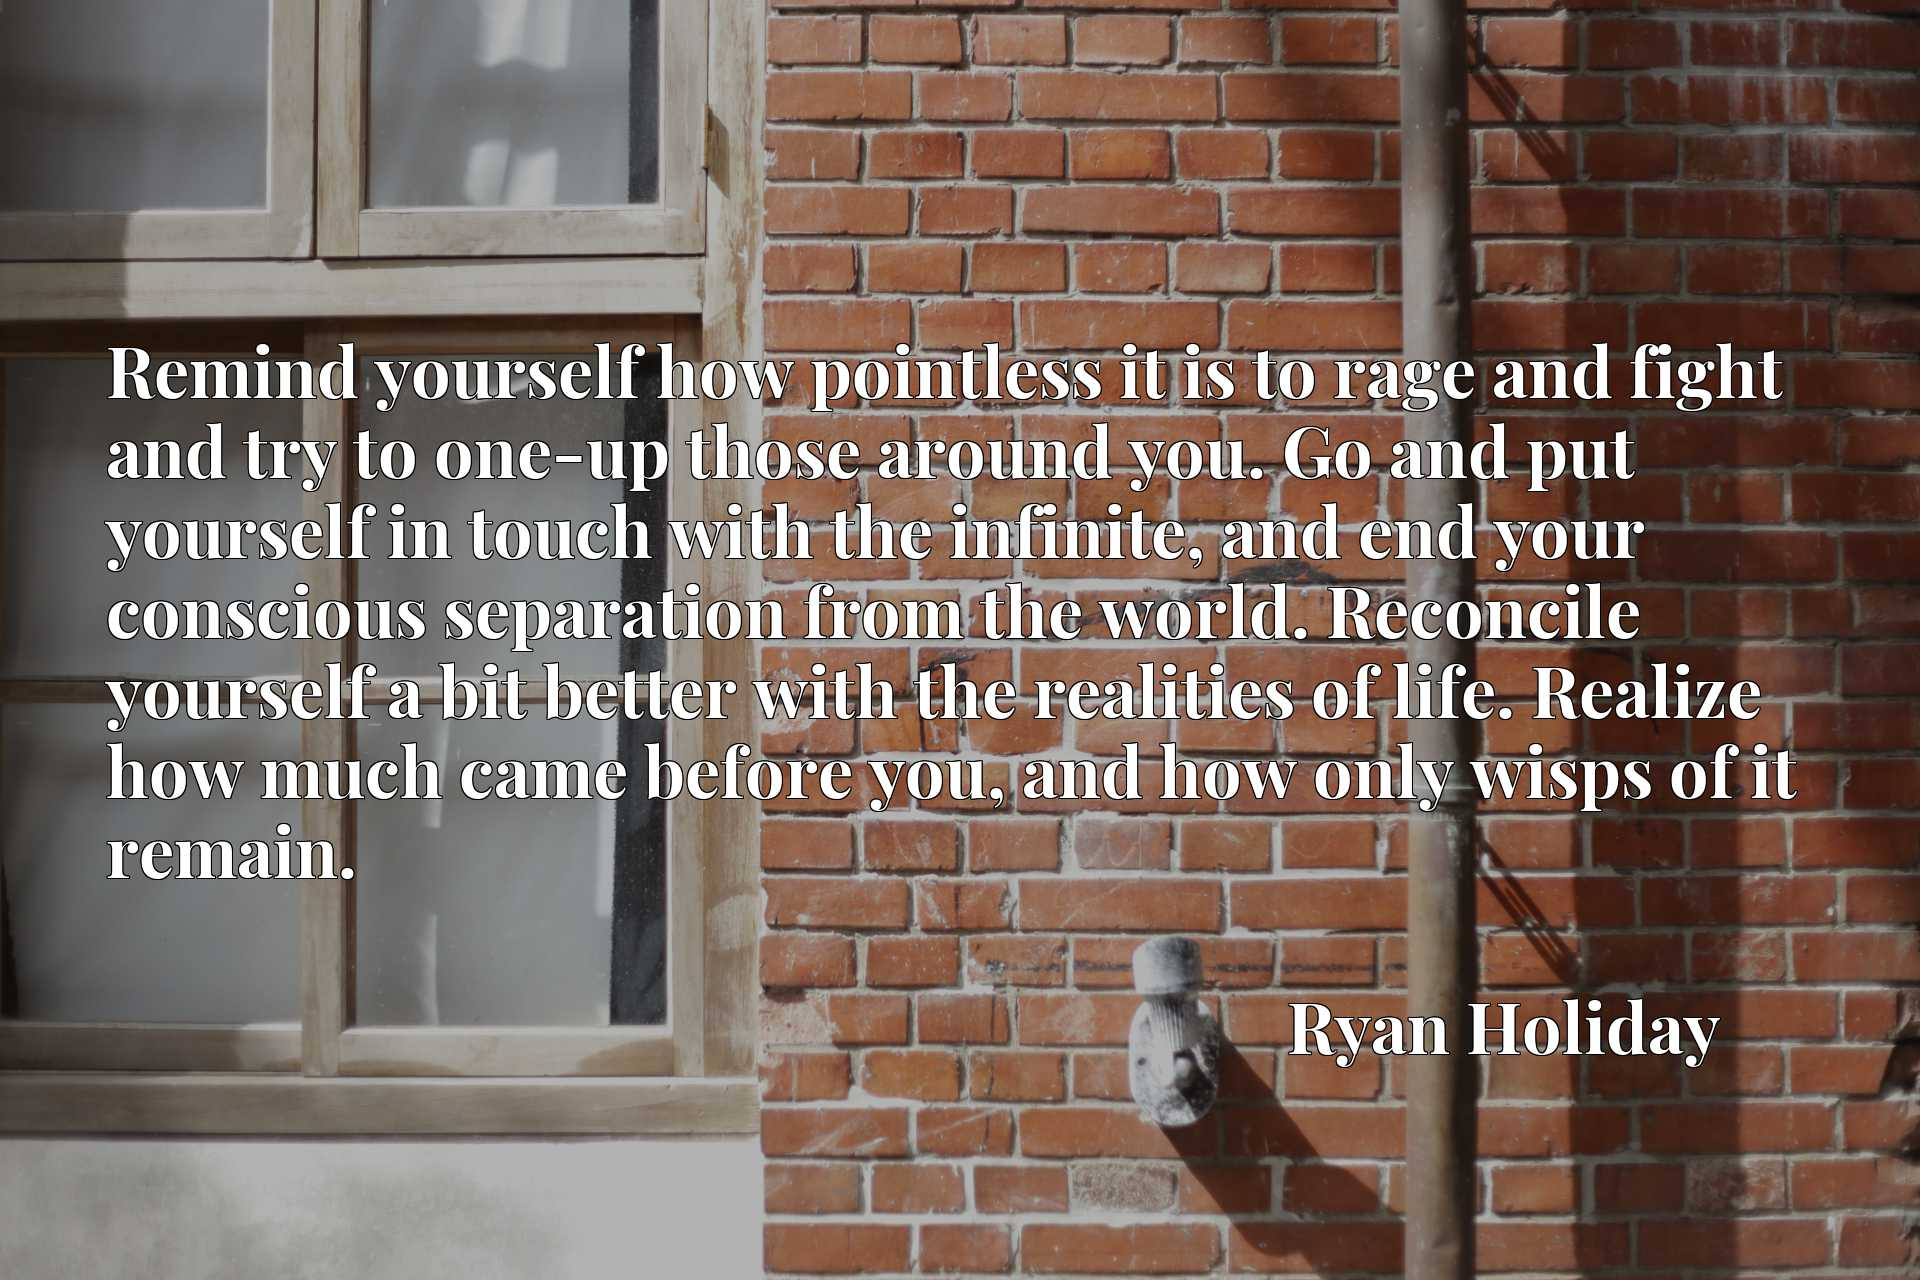 Remind yourself how pointless it is to rage and fight and try to one-up those around you. Go and put yourself in touch with the infinite, and end your conscious separation from the world. Reconcile yourself a bit better with the realities of life. Realize how much came before you, and how only wisps of it remain.